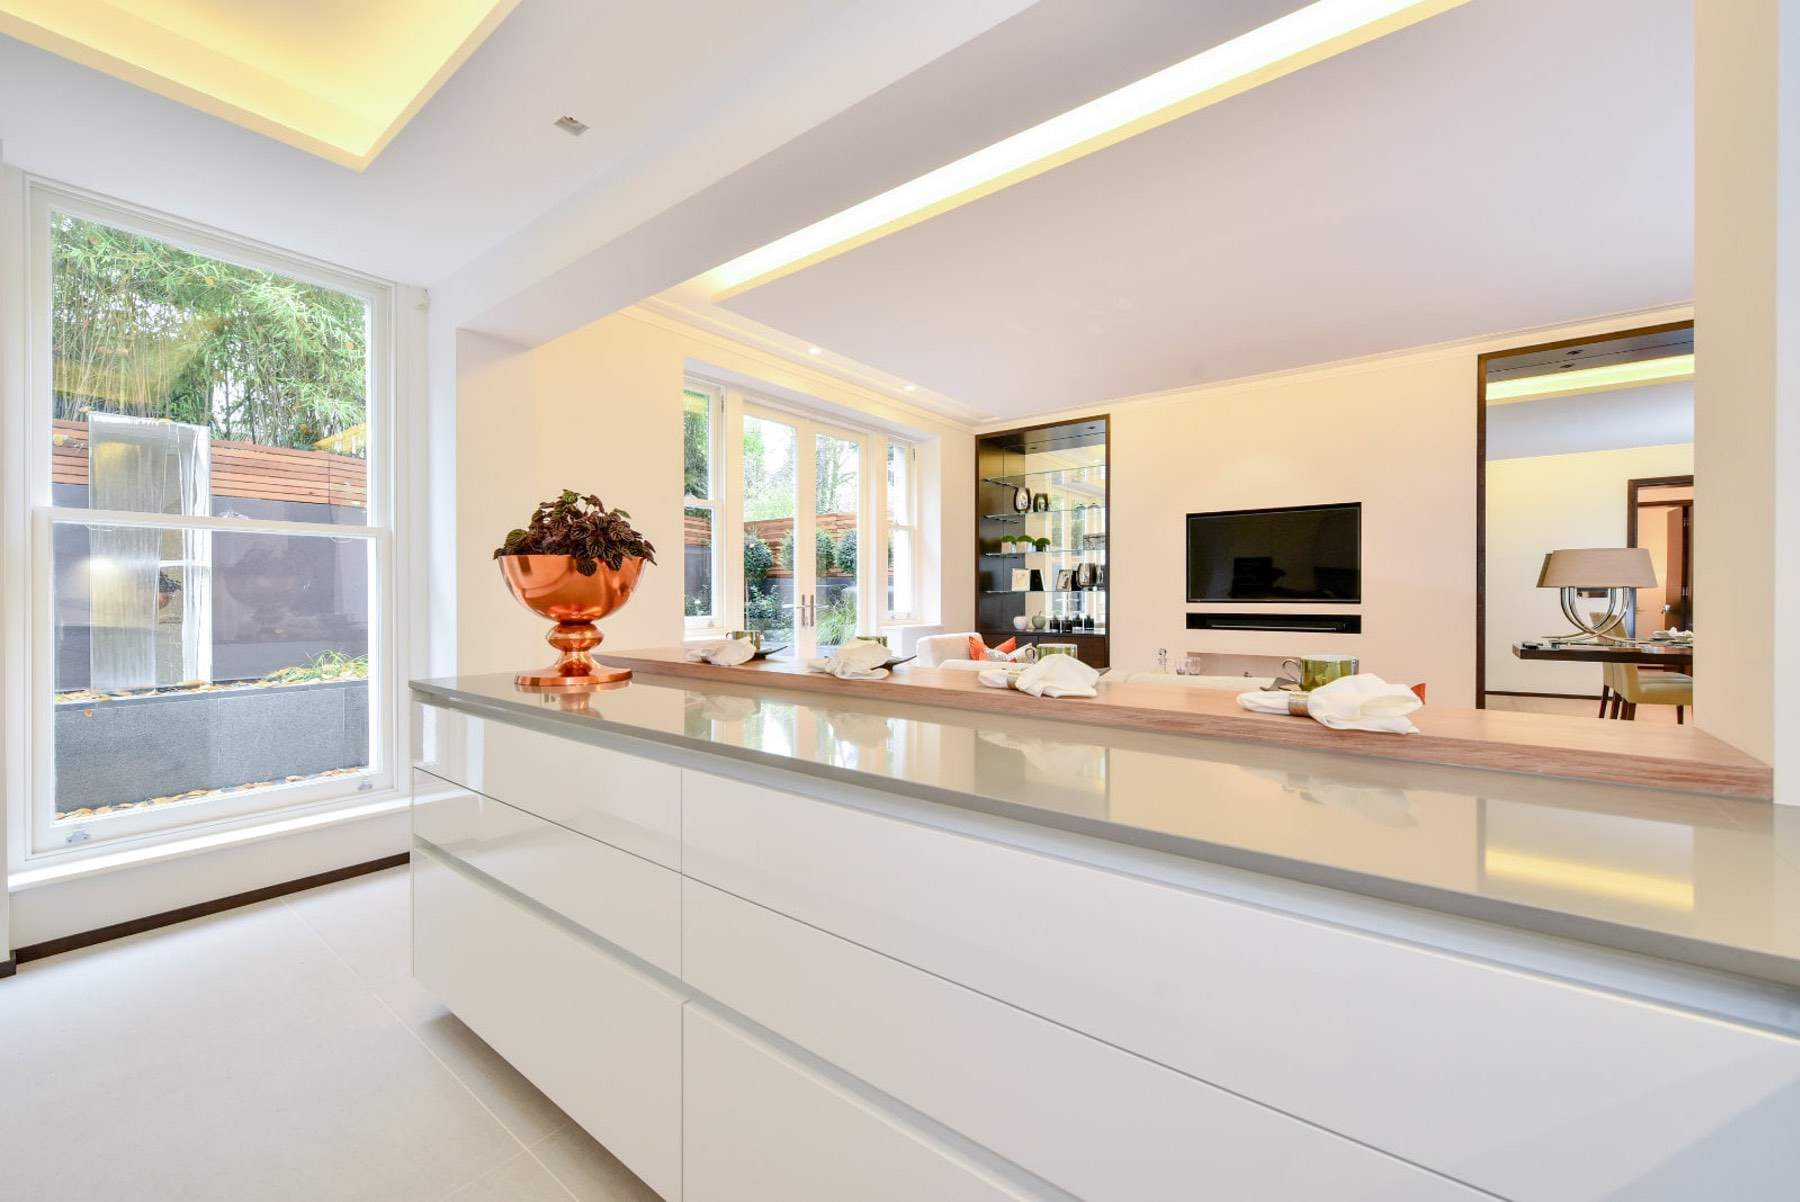 Hampstead 1 Kitchen 7 | Such Designs, London